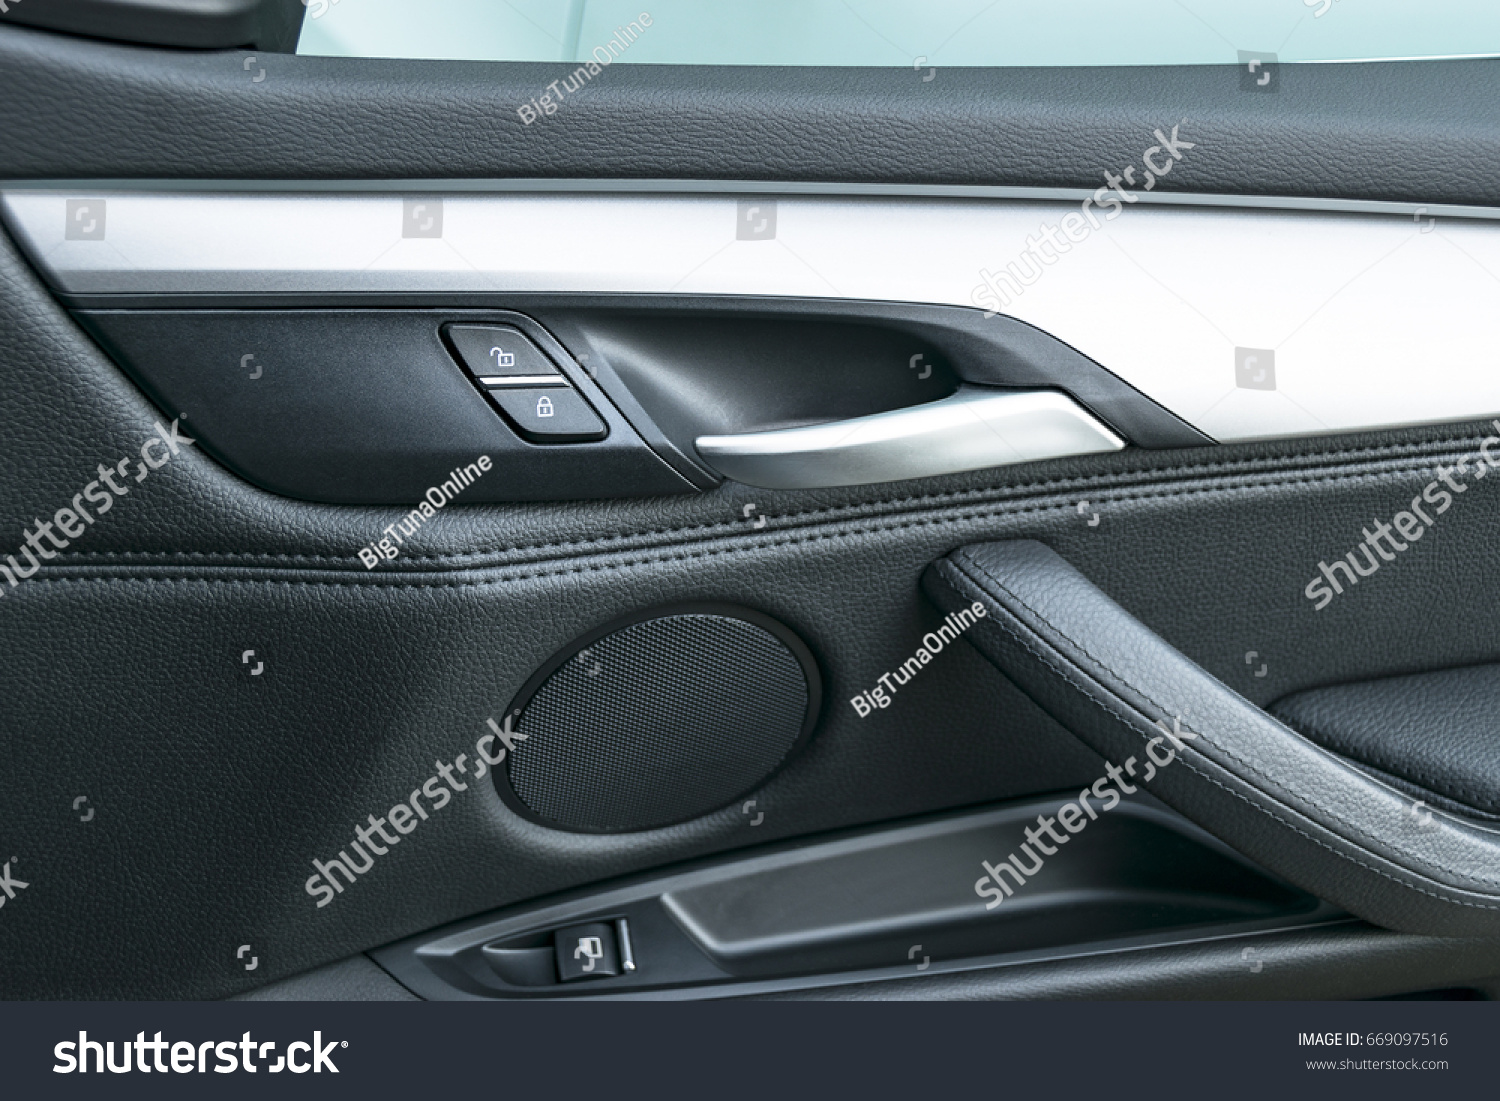 Car Door Handle Inside The Luxury Modern Car With Black Leather And